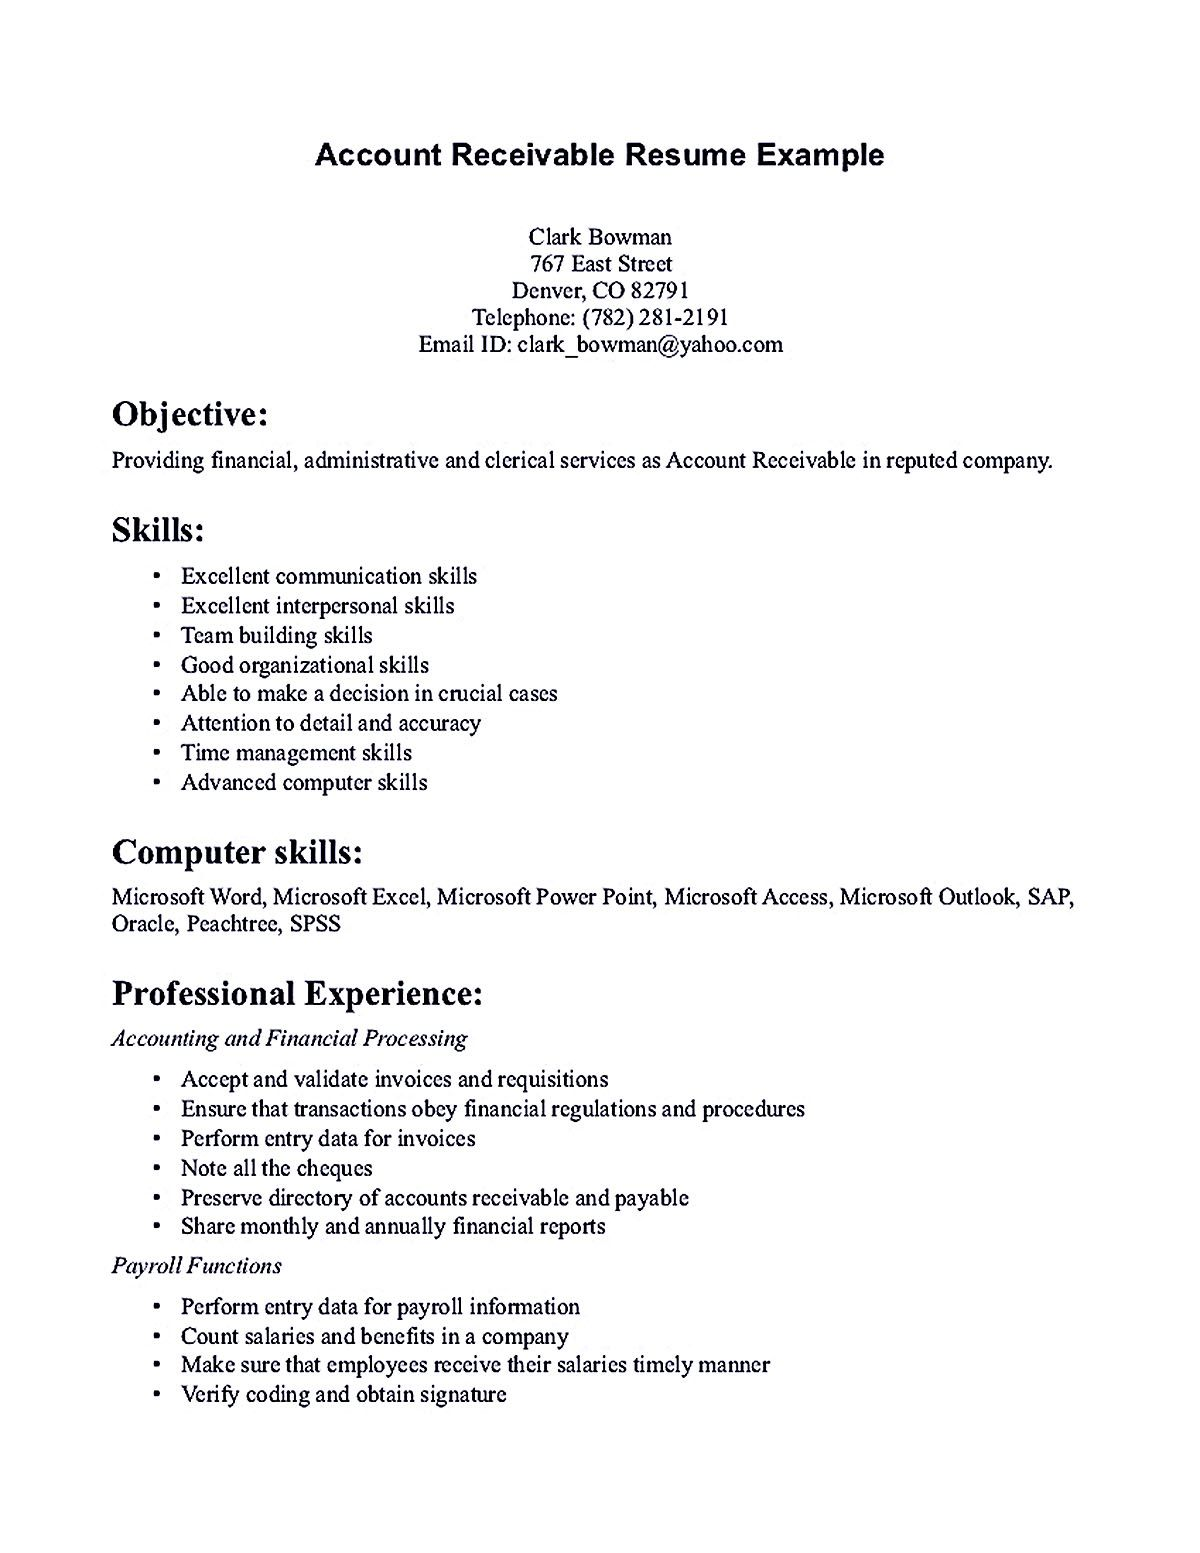 Accounts Payable And Receivable Resume Magnificent Account Receivable Resume Shows Both Technical And Interpersonal .